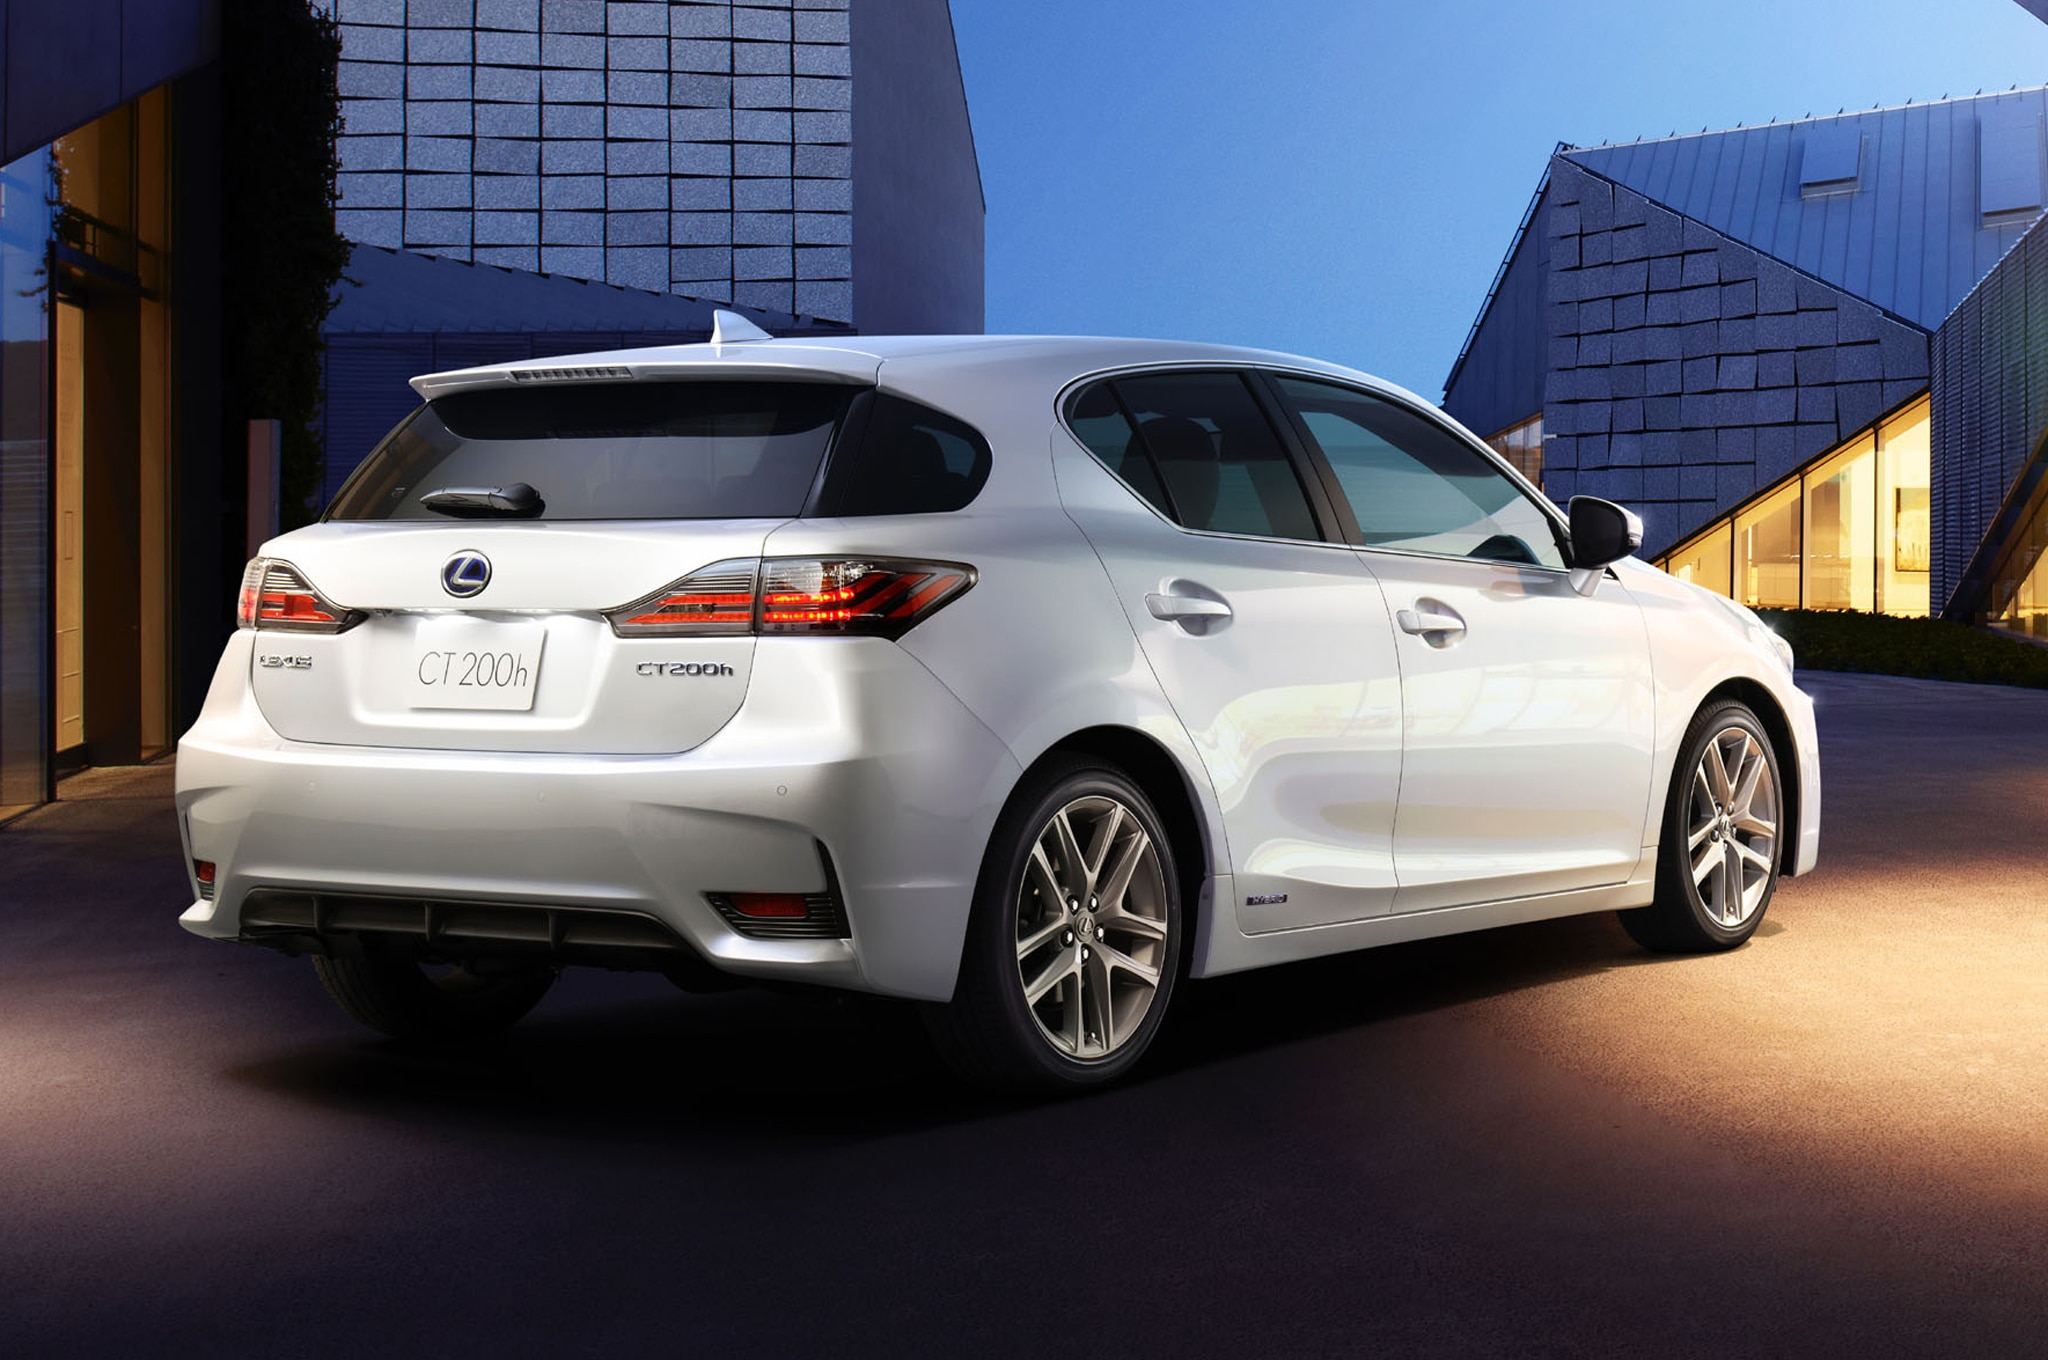 2014 lexus ct200h to debut in china. Black Bedroom Furniture Sets. Home Design Ideas